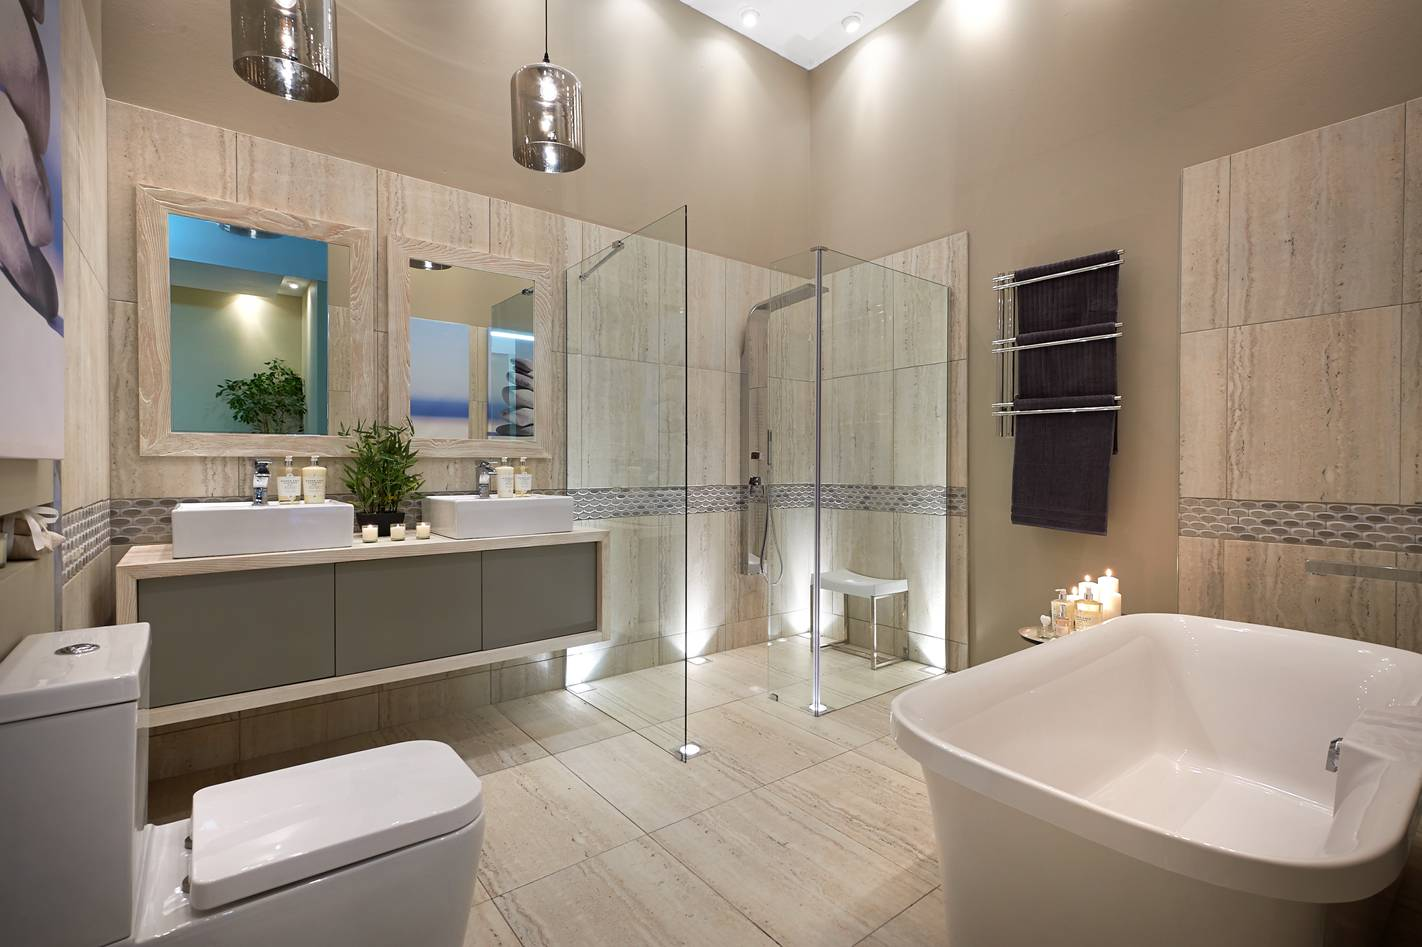 Top design tips for family bathrooms Best bathroom design pictures